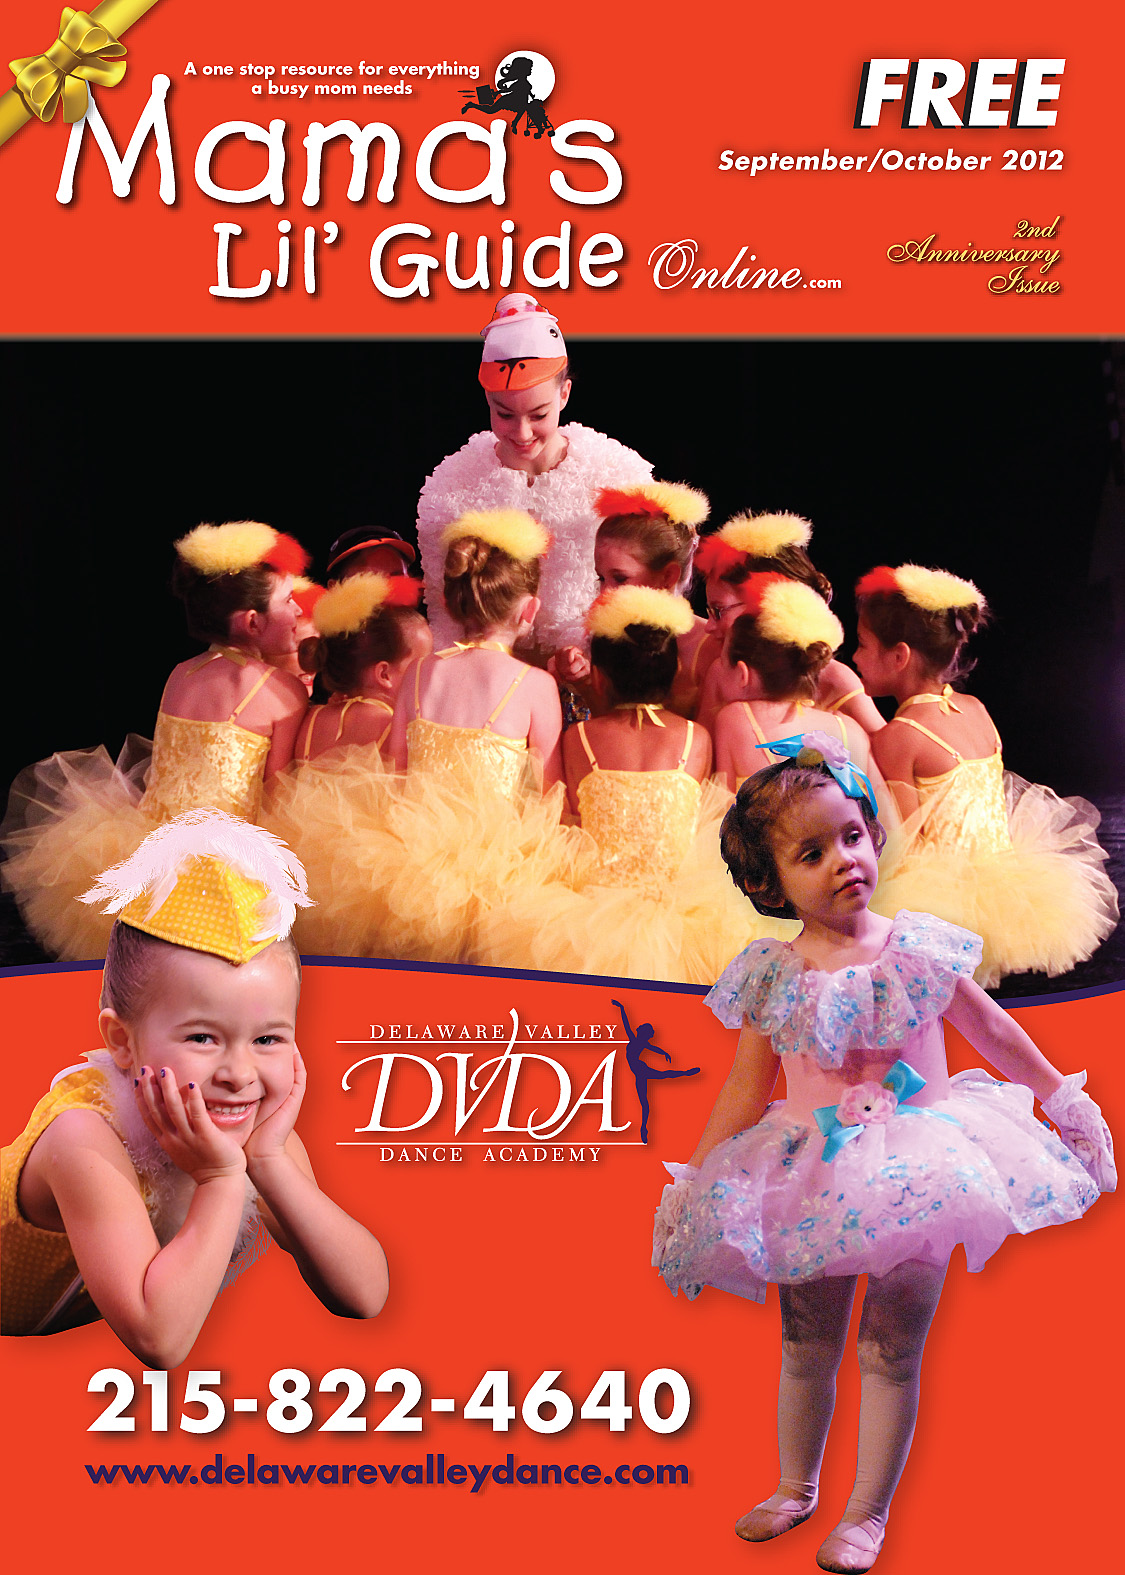 Mamas Lil' Guide Second Anniversary September/October 2012 Issue